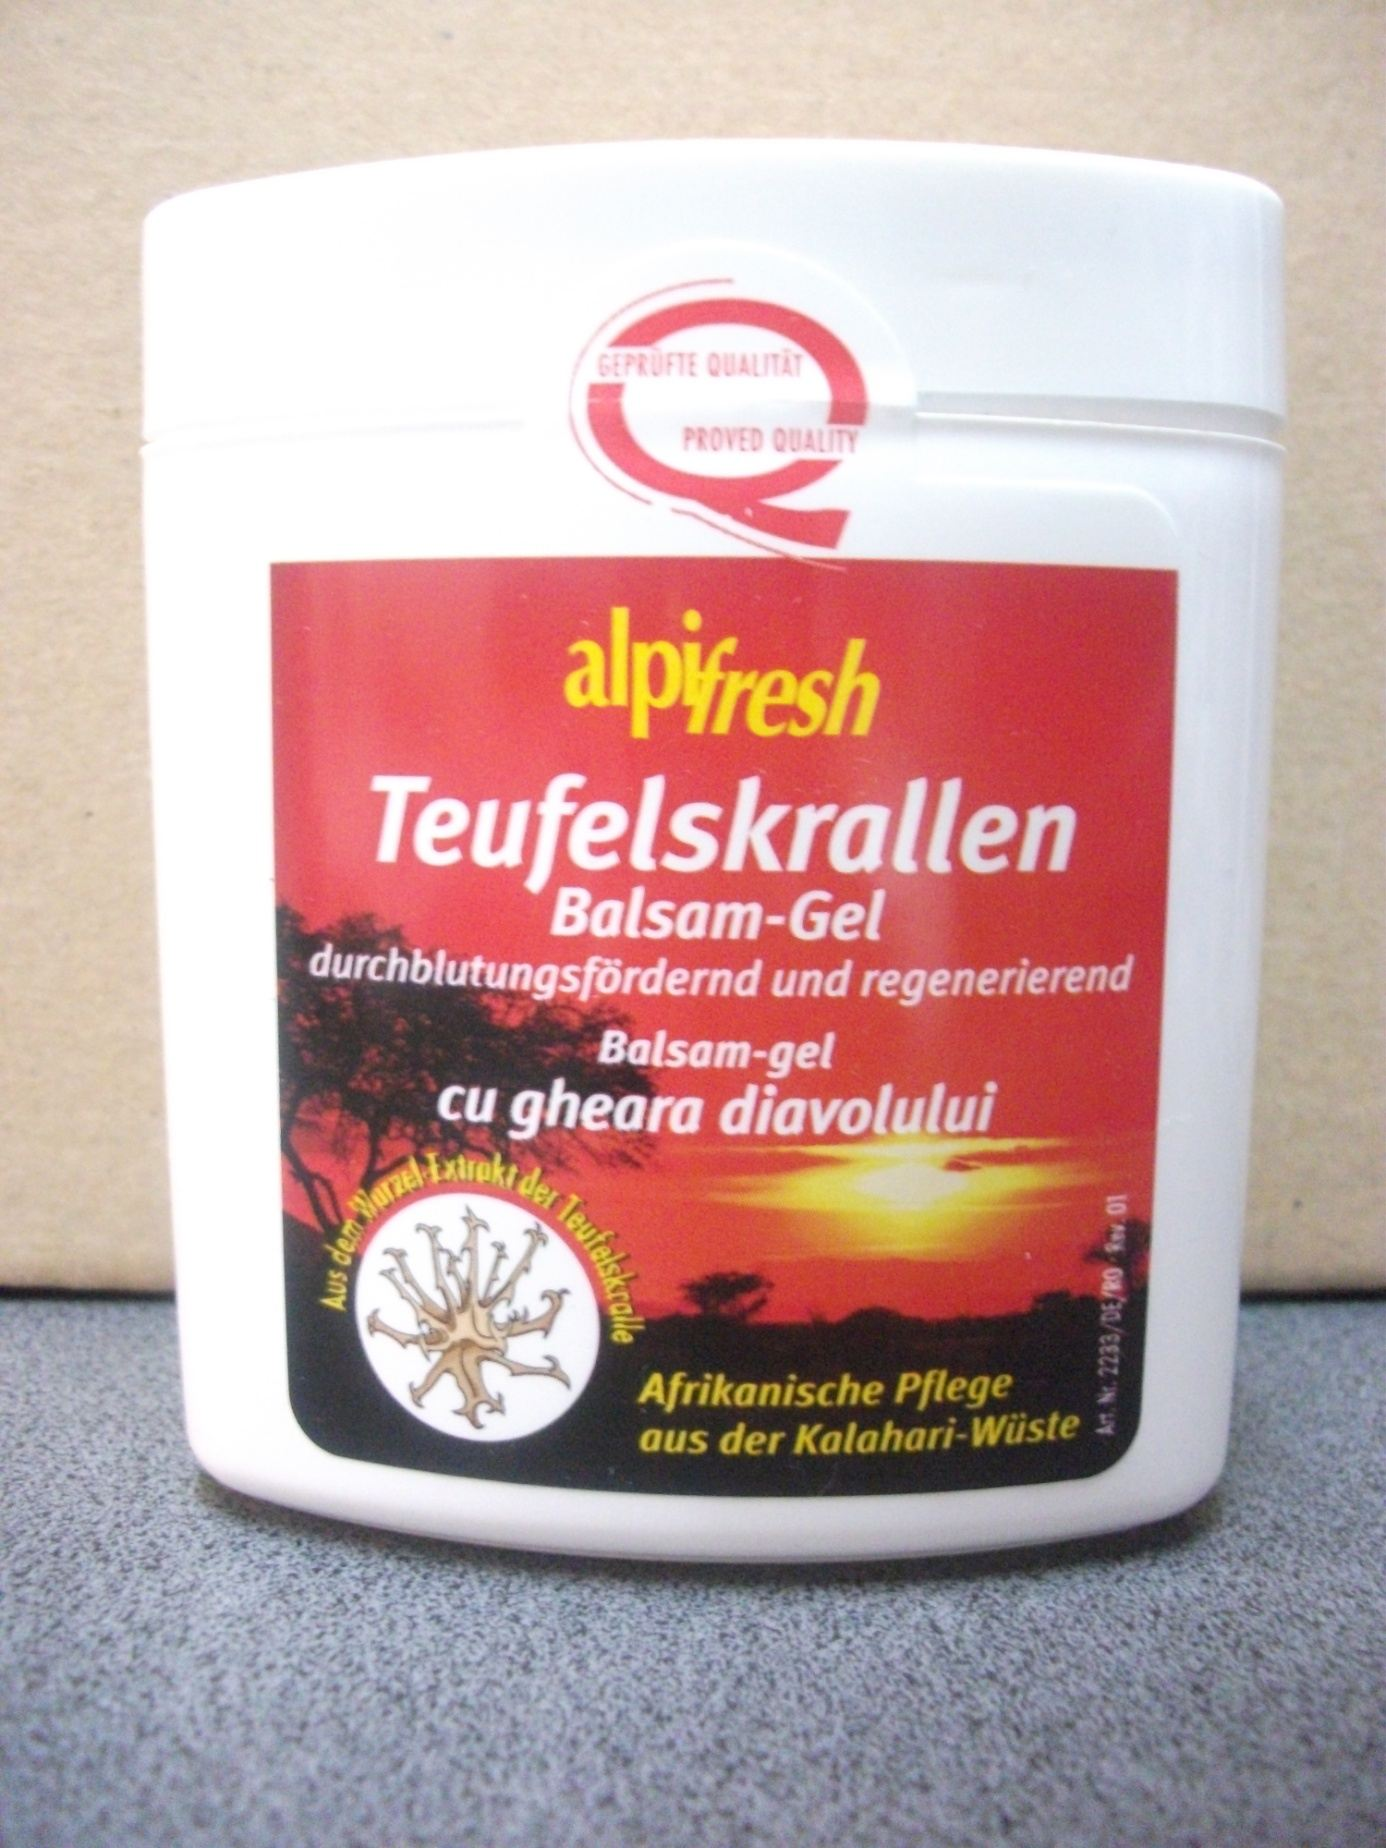 Balsam gel gheara diavolului - Alpifresh